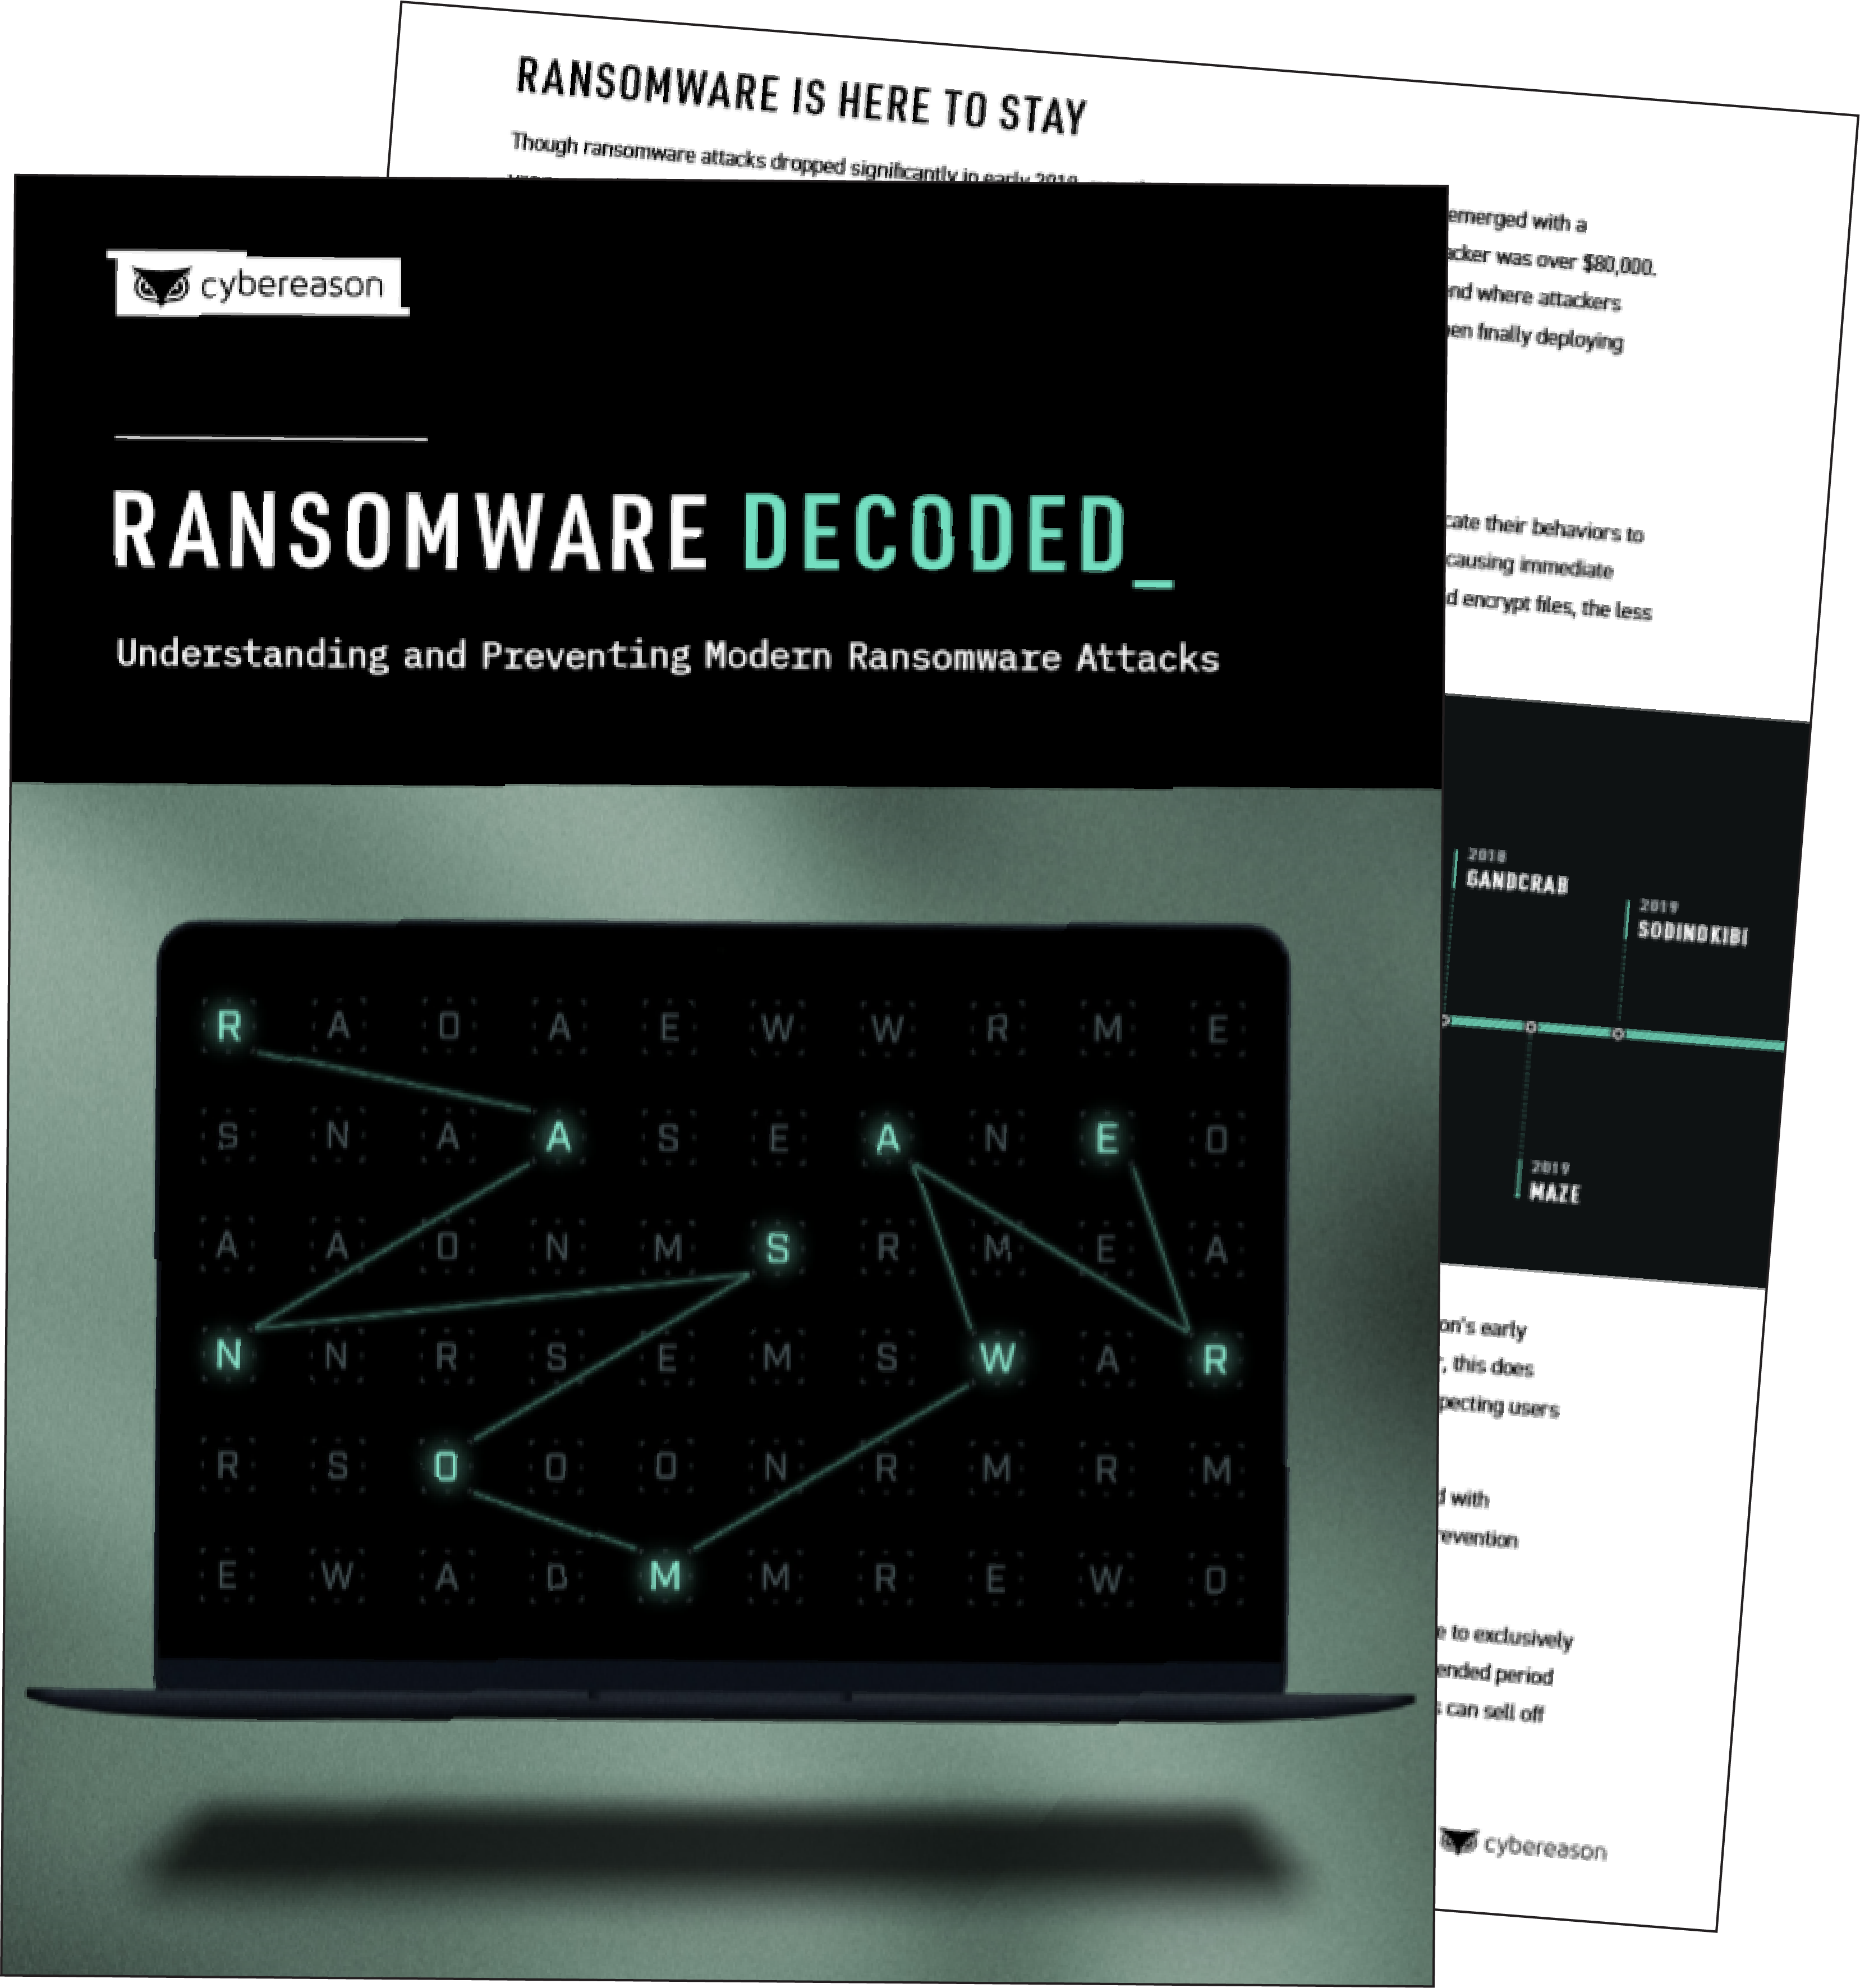 ransomware-decoded-wp-cover